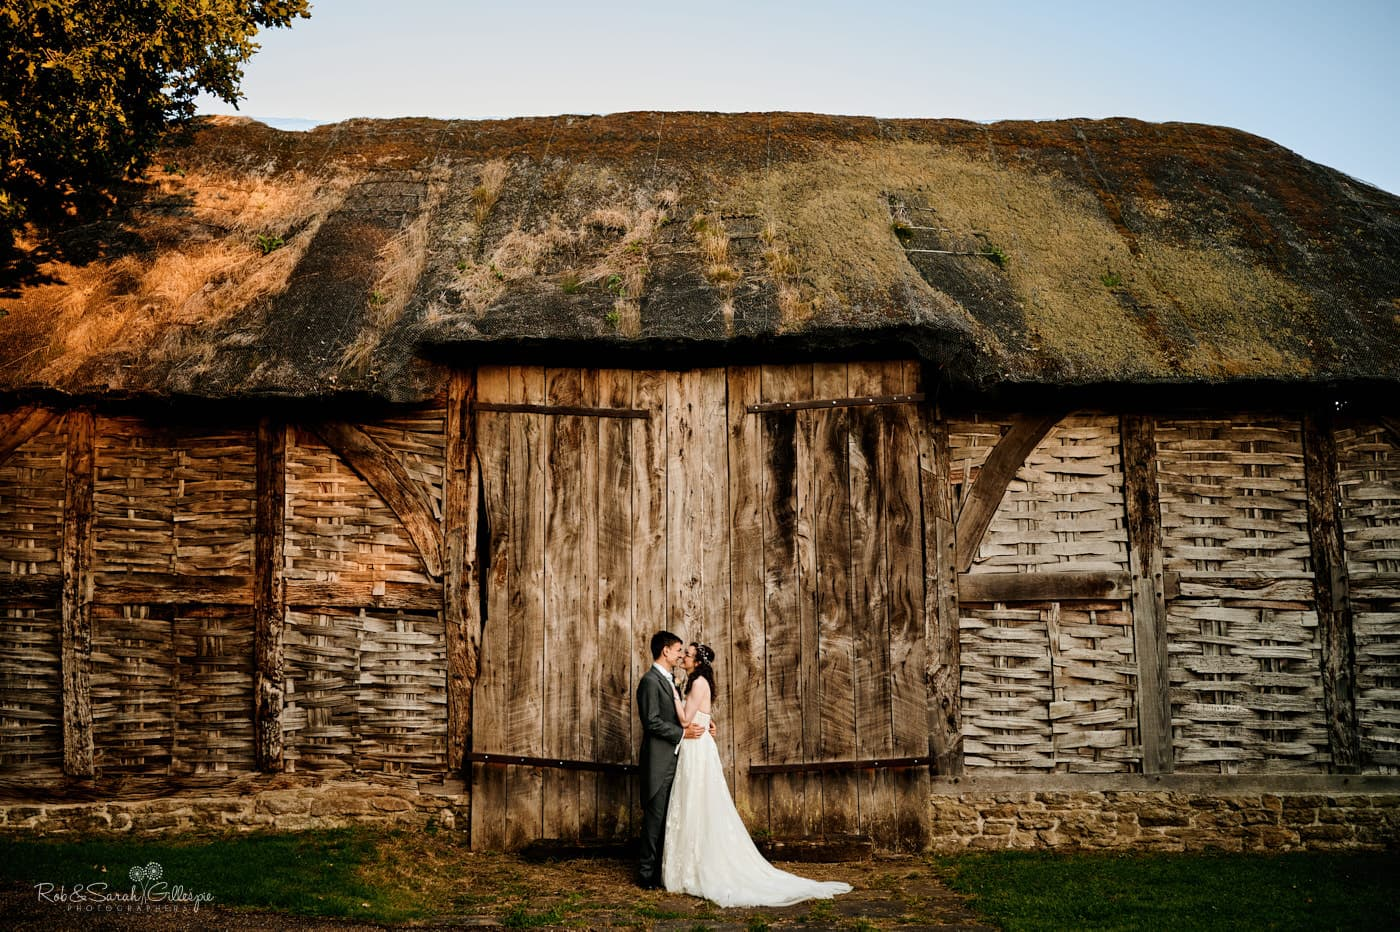 Bride and groom in front of old barn at Avoncroft Museum wedding